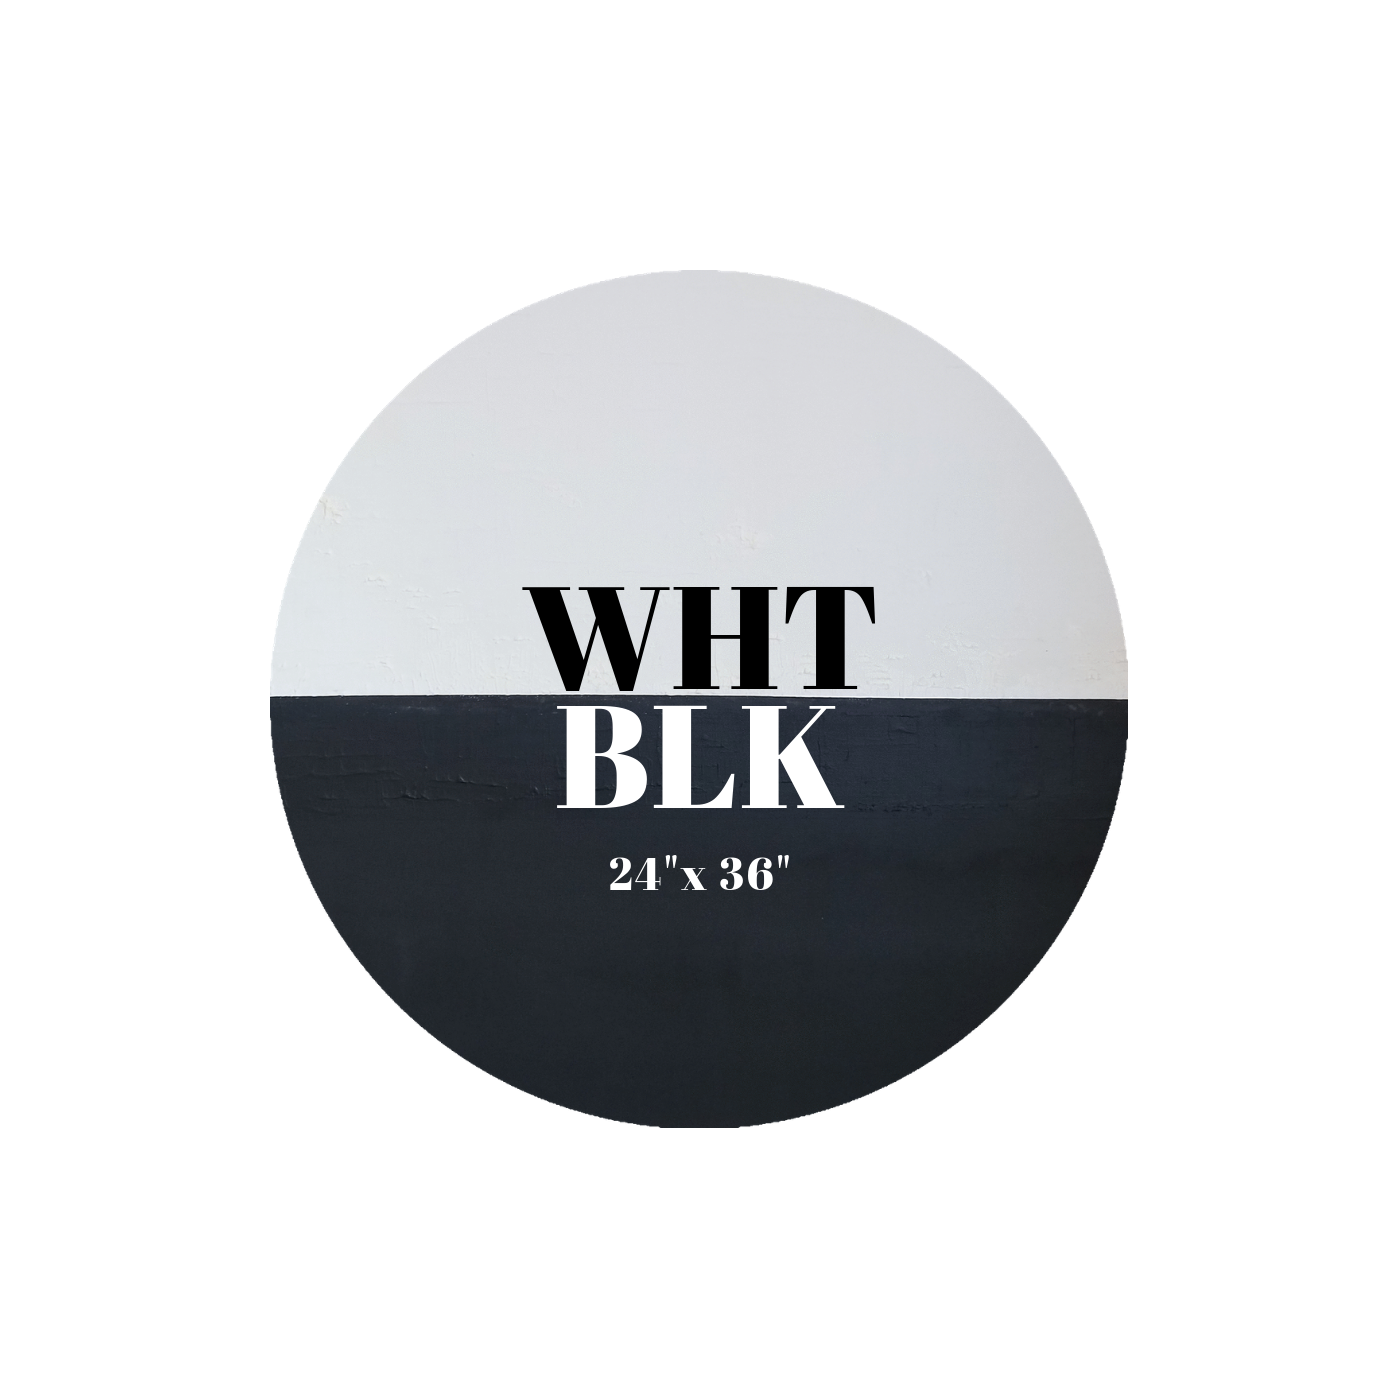 BLK.png